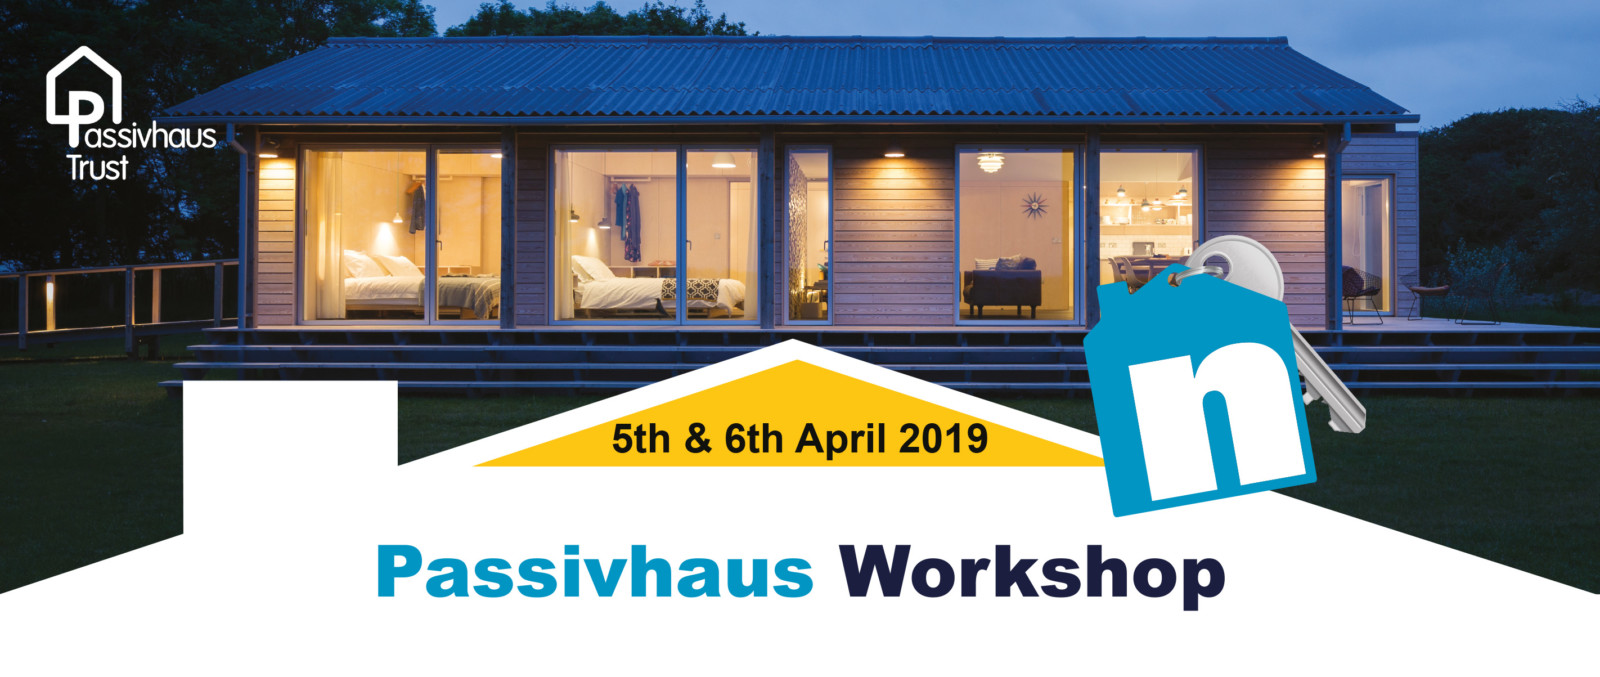 Passivhaus Workshop Spring 2019